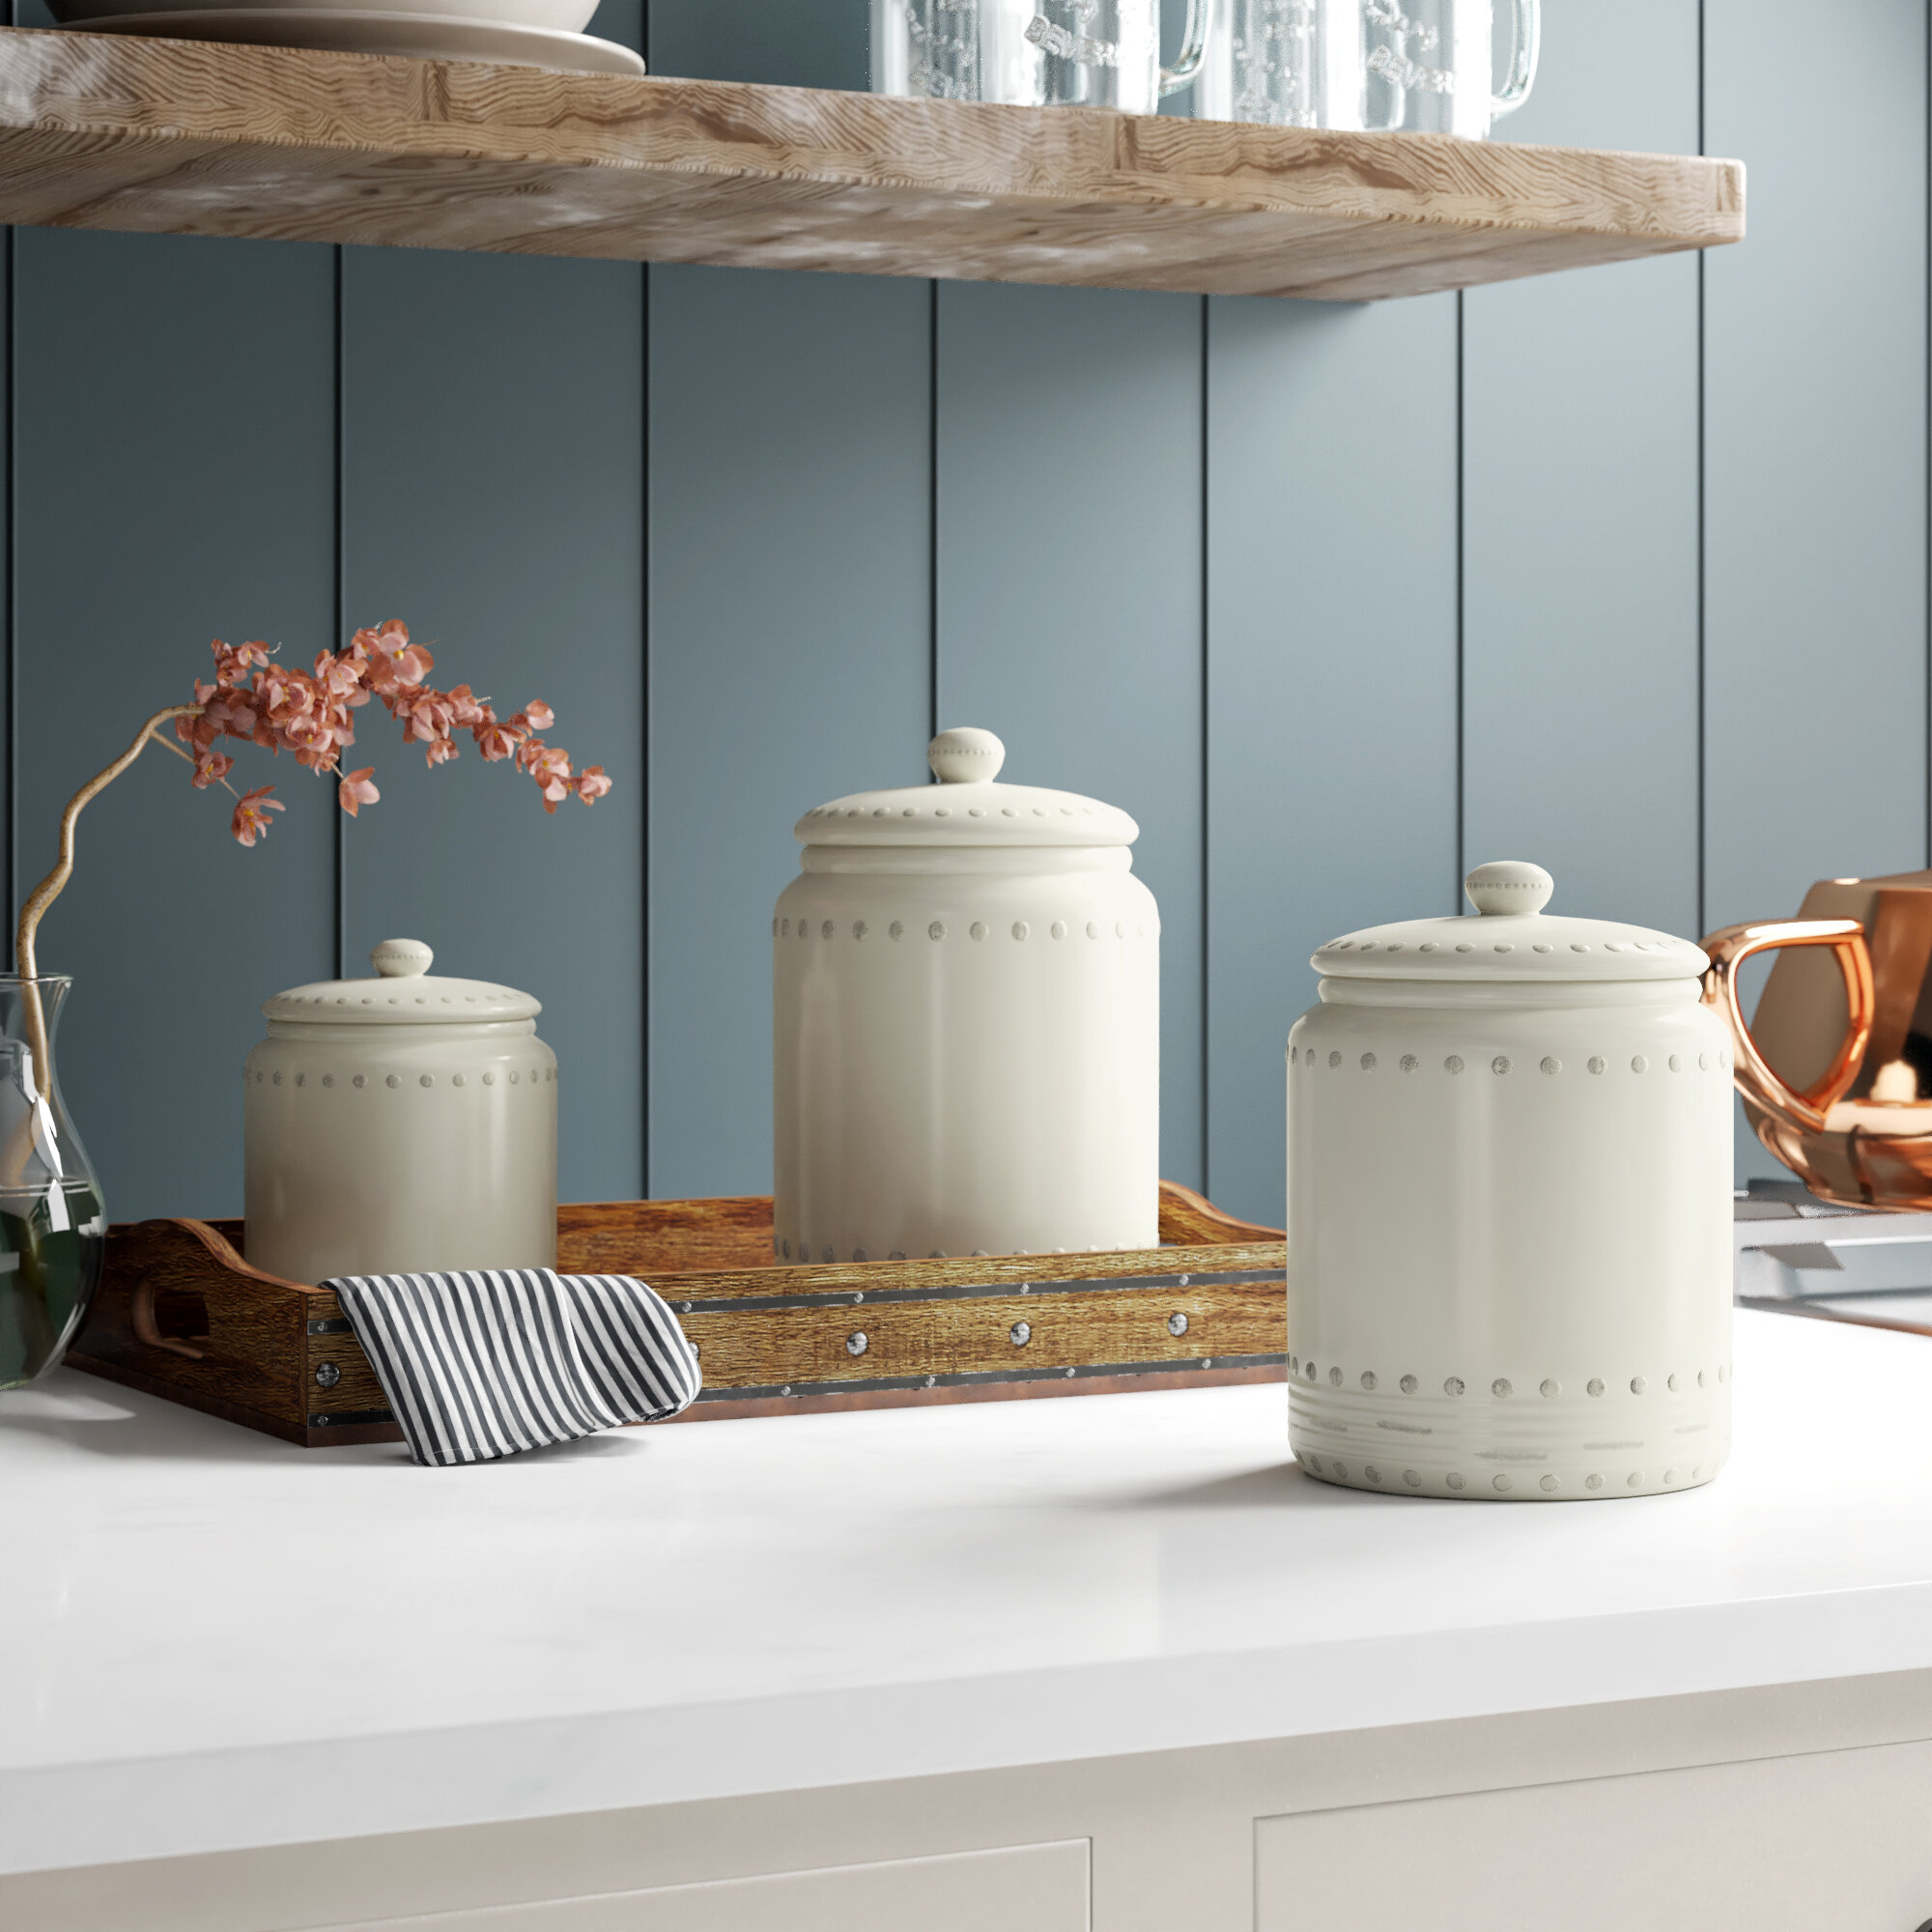 Ceramic 3 Piece Kitchen Canister Set with Air-Tight Lids